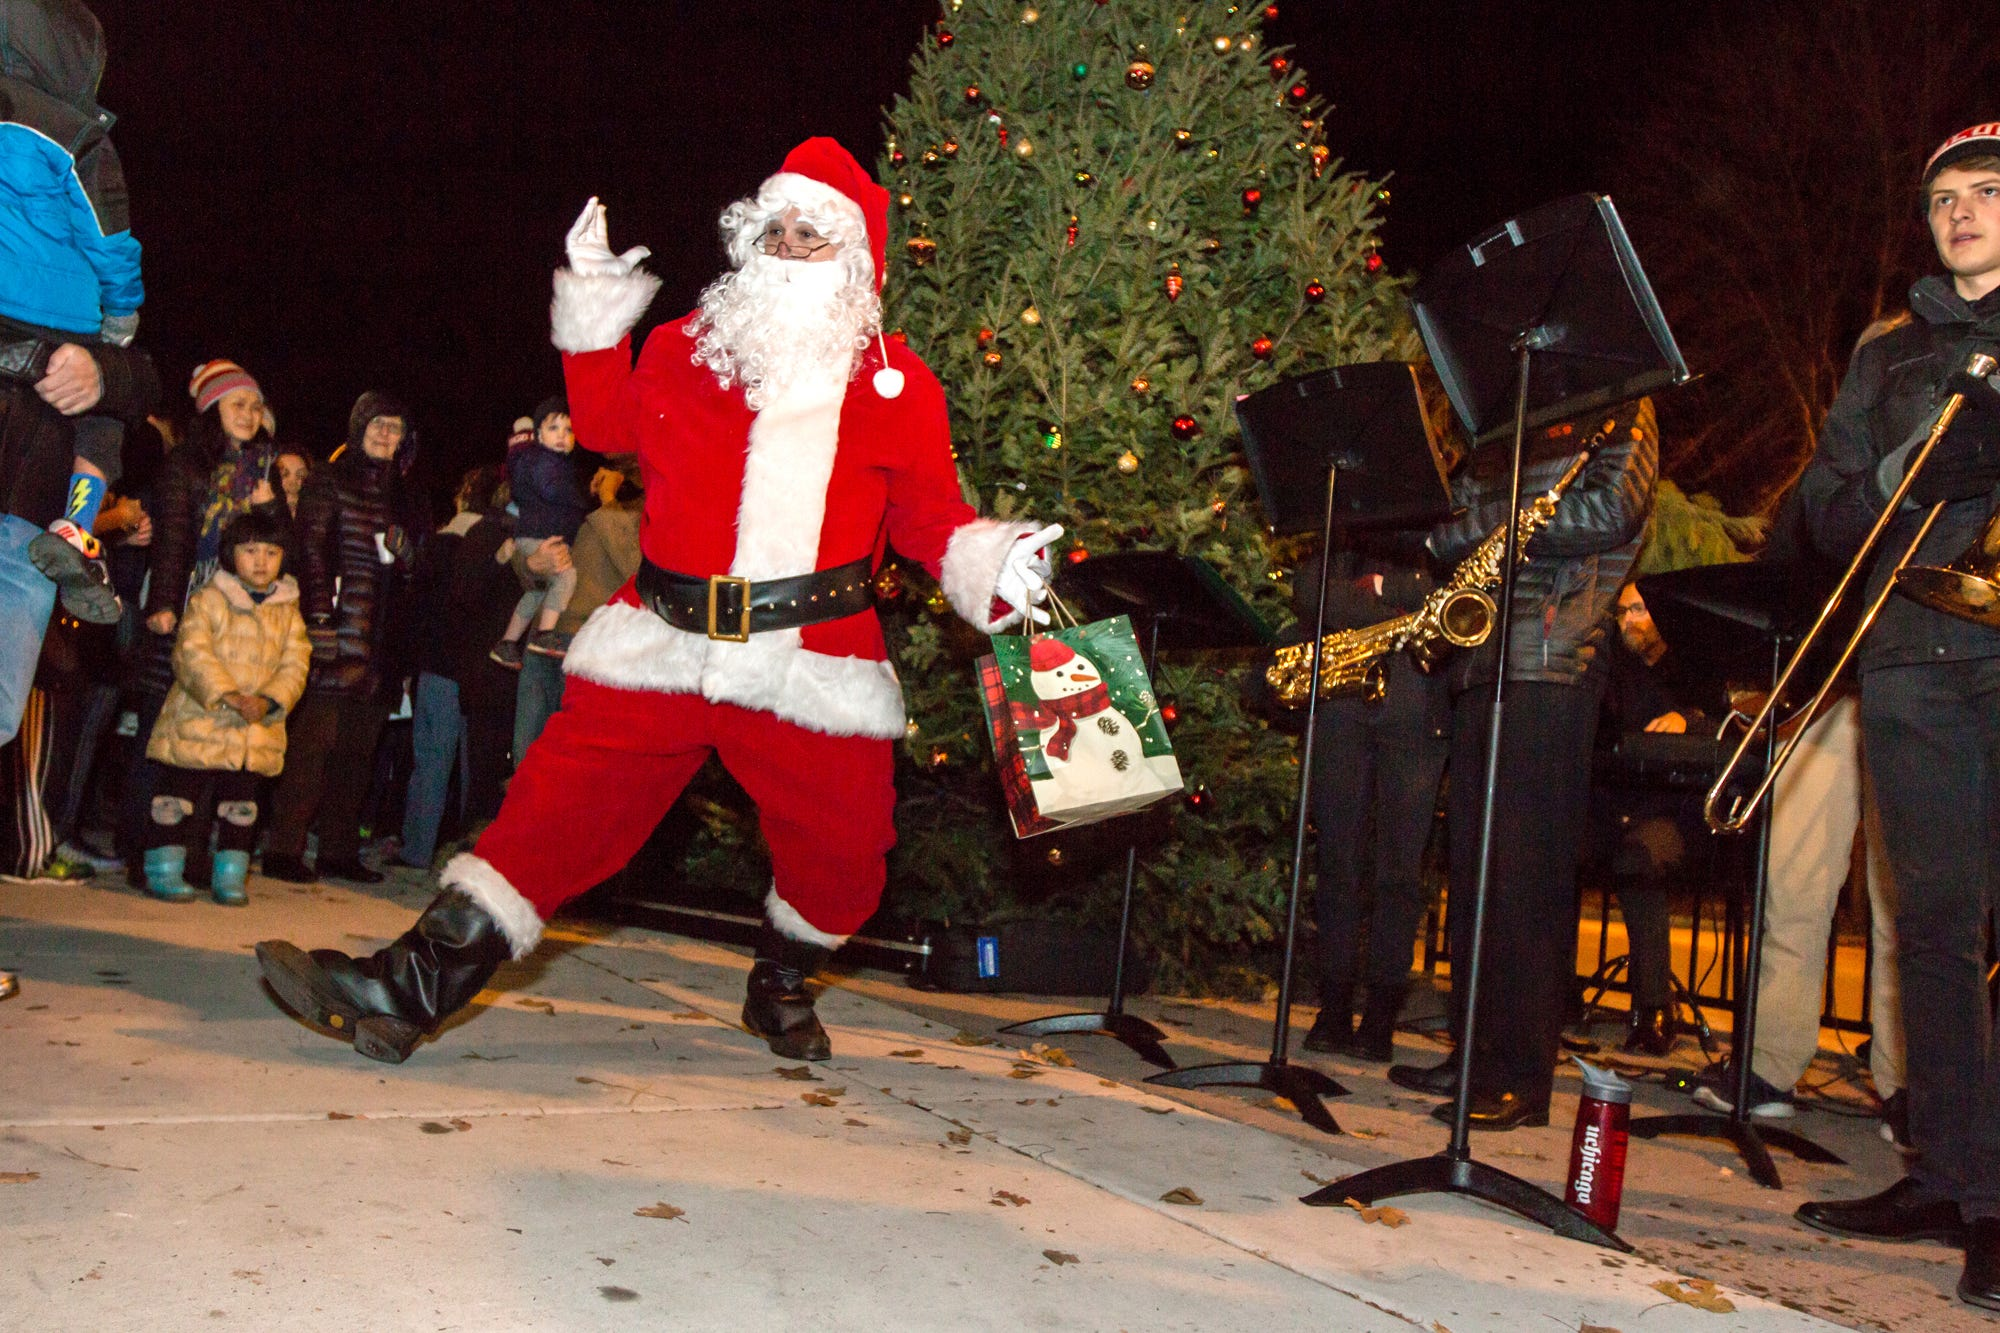 Tree Lighting 2020 Shorewood Christmas Shorewood may ban holiday decorations from village buildings, places